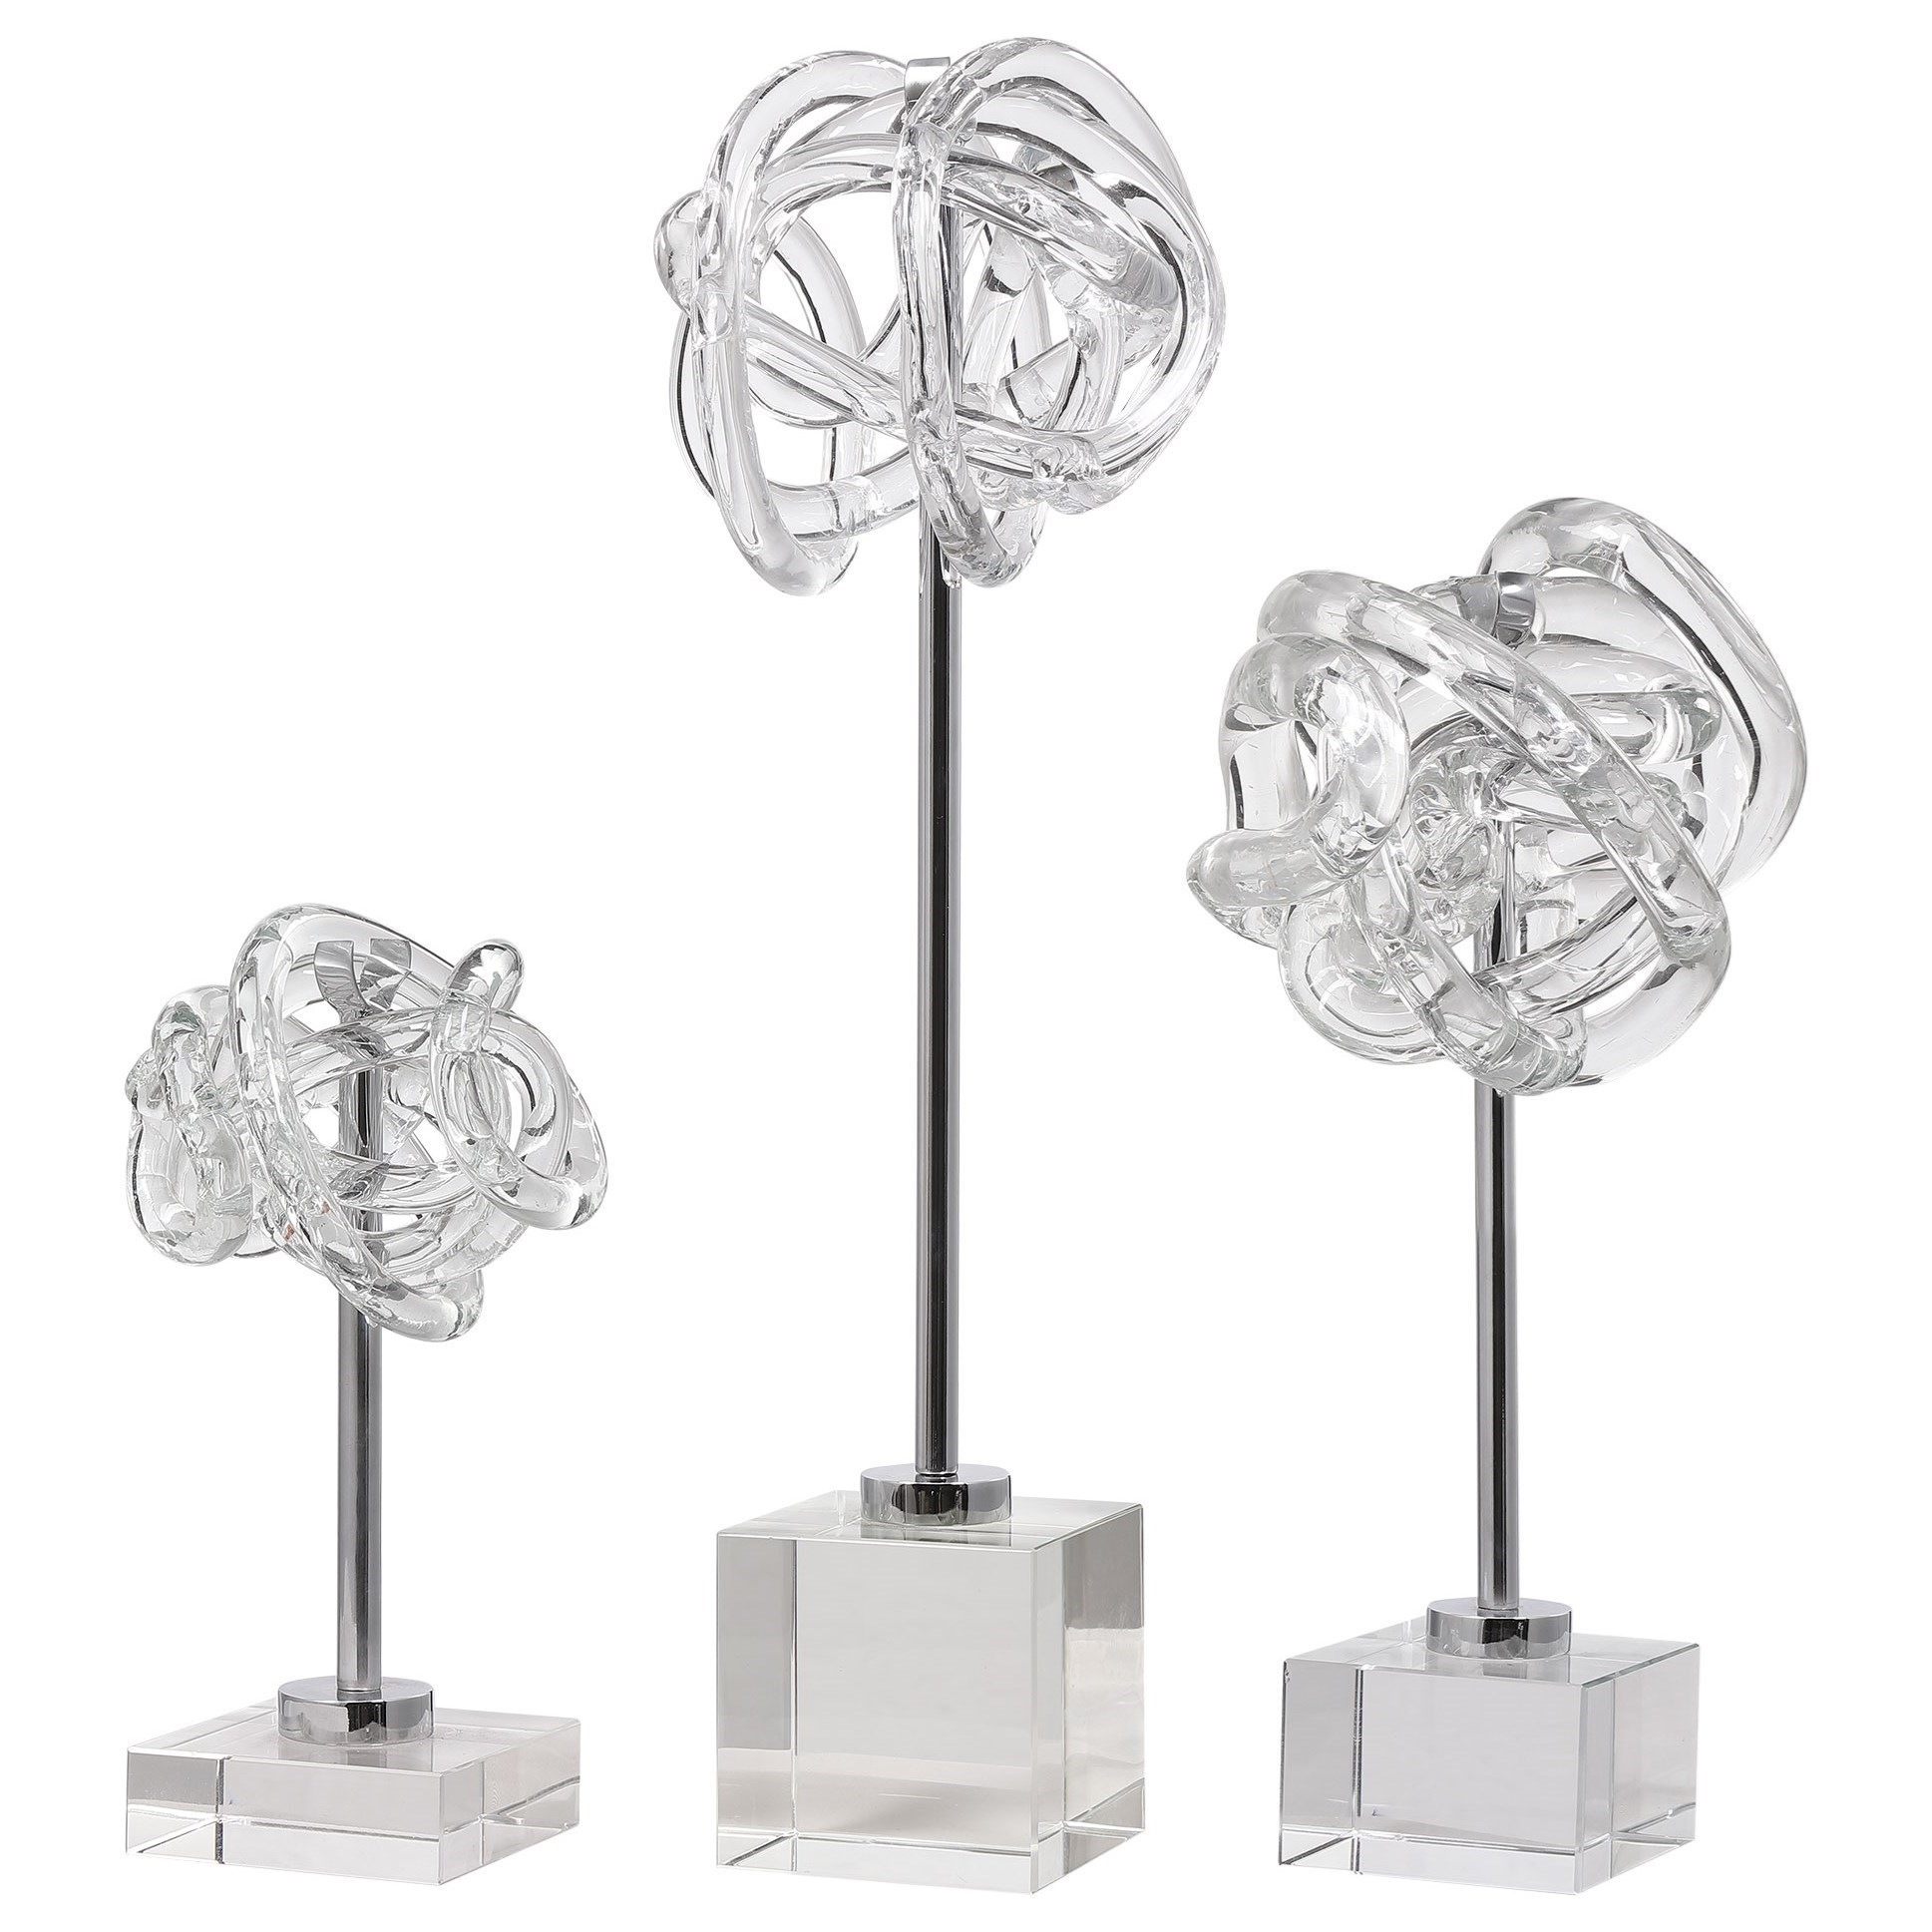 Accessories - Statues and Figurines Neuron Glass Table Top Sculptures, S/3 by Uttermost at Mueller Furniture